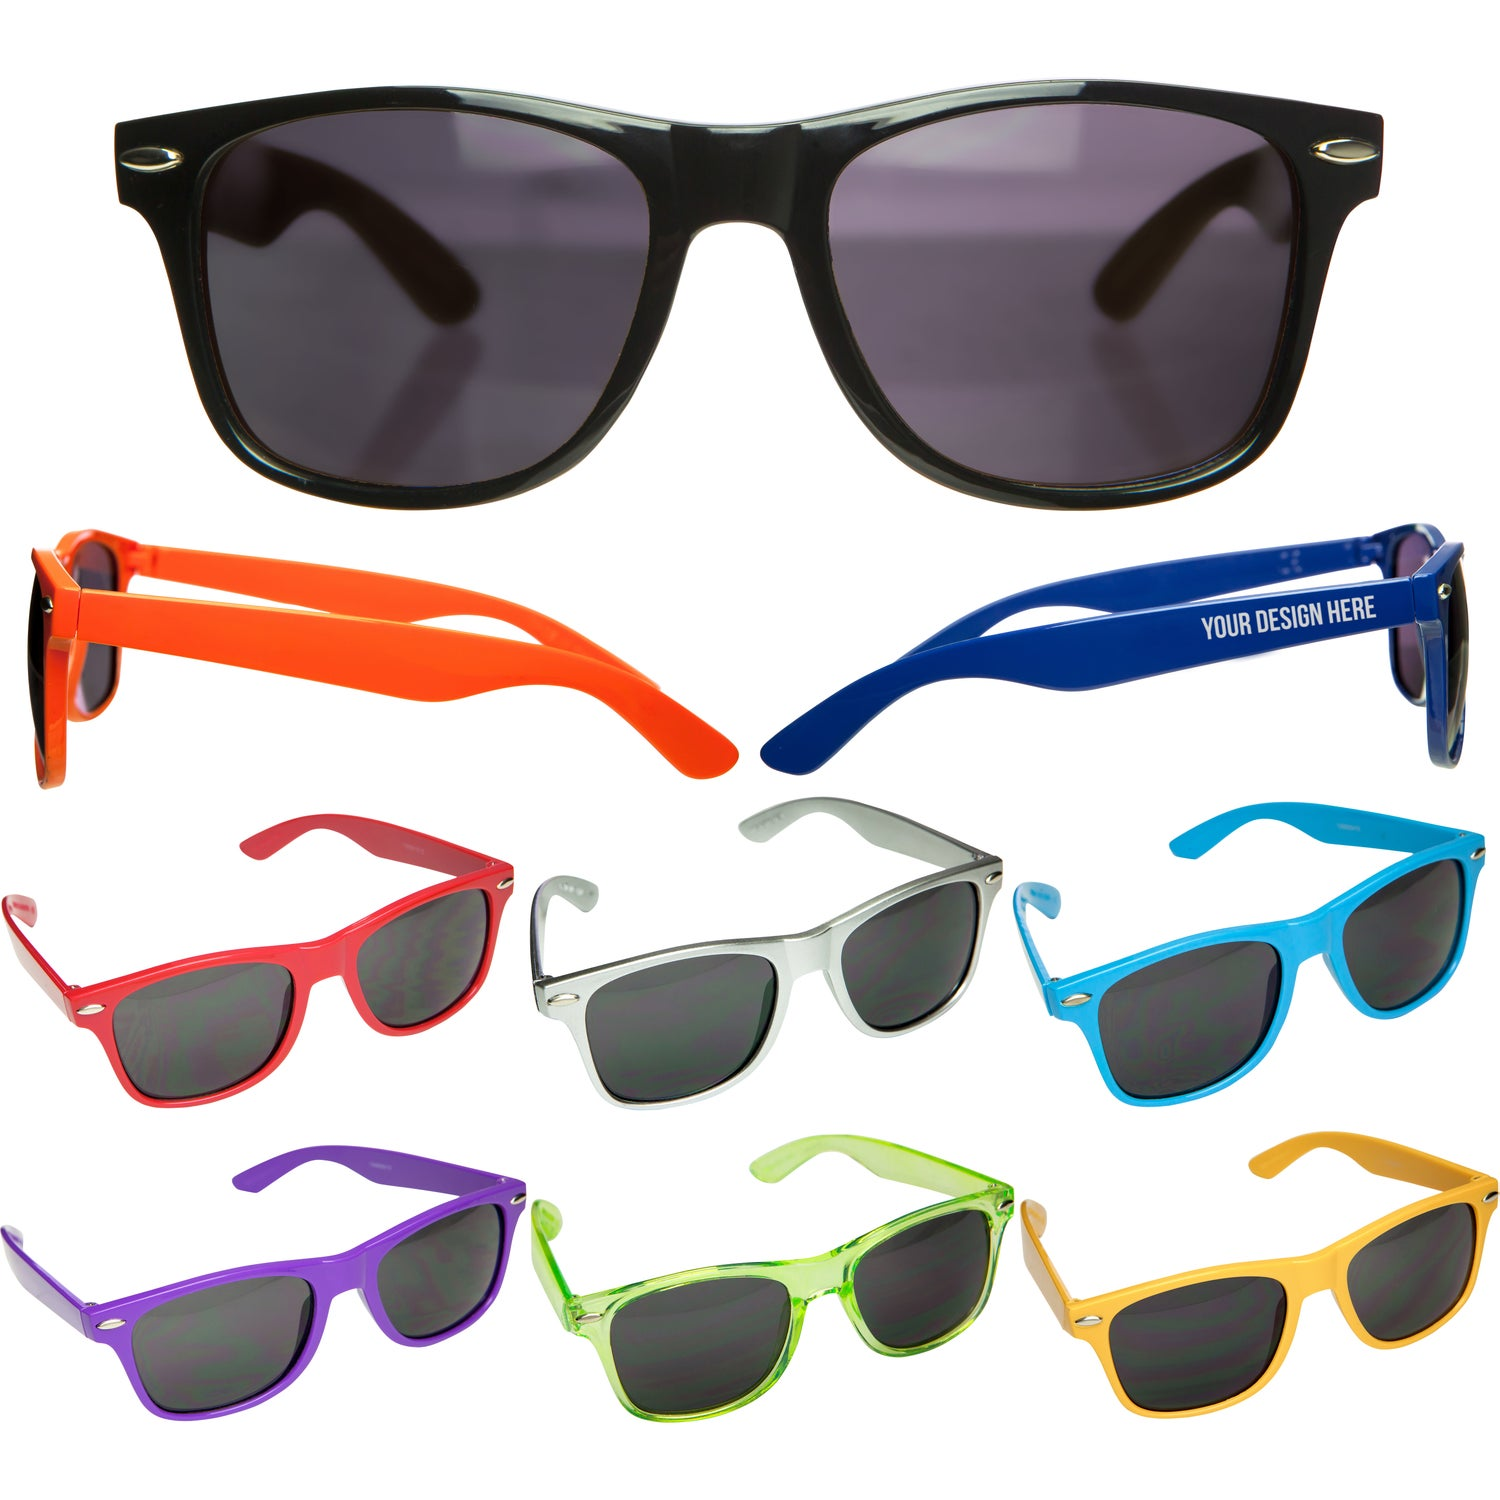 9bc769803330f CLICK HERE to Order Malibu Sunglasses Printed with Your Logo for  1.55 Ea.